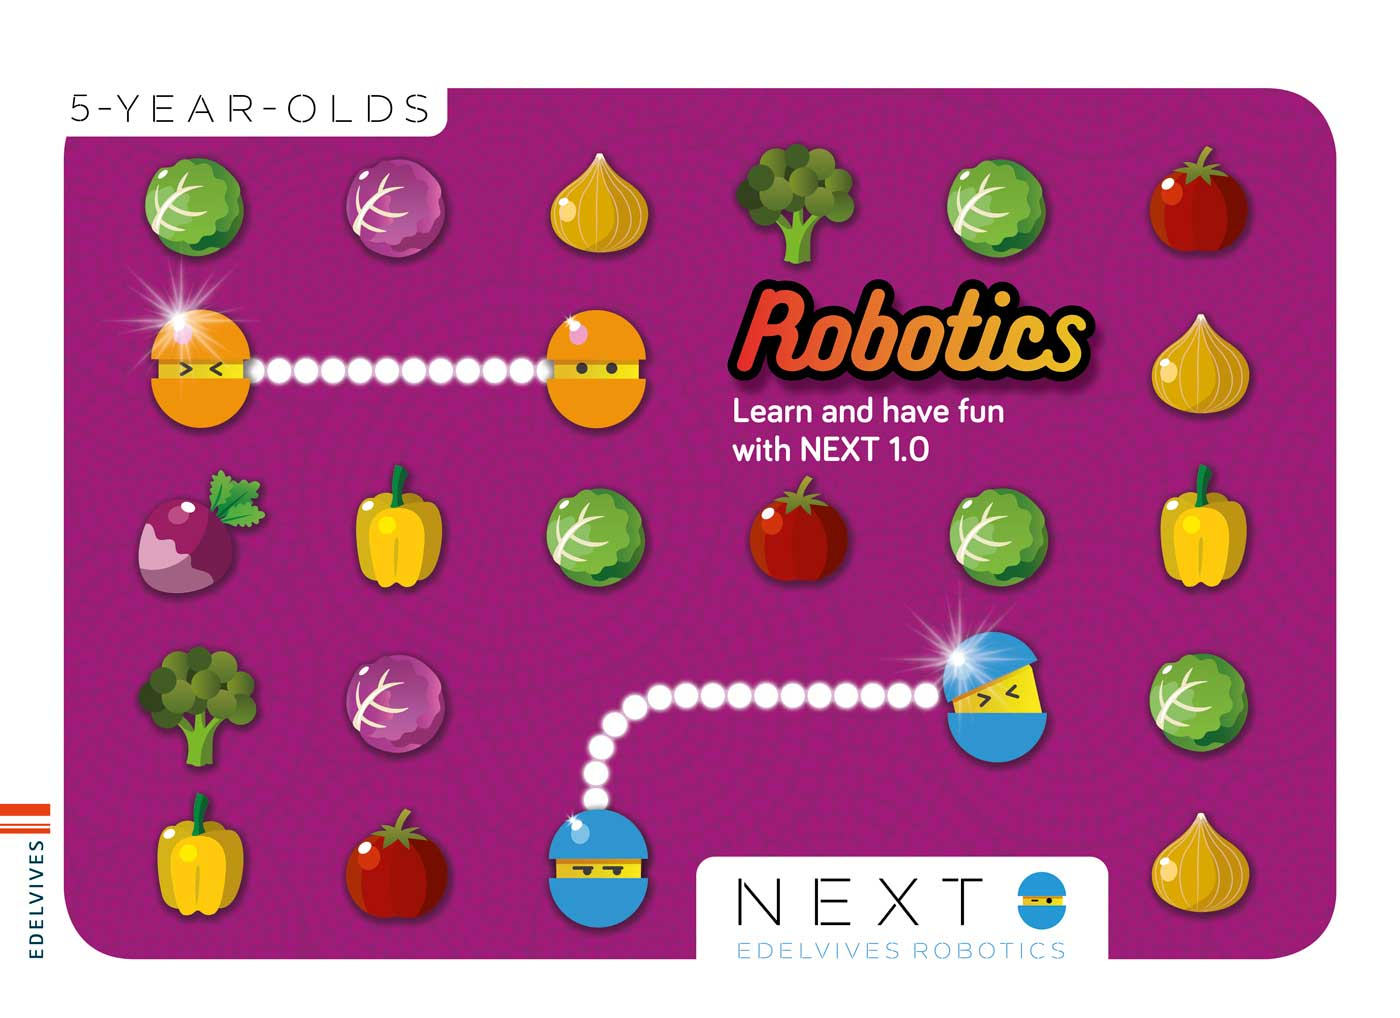 Workbook. Edelvives Next Robotics